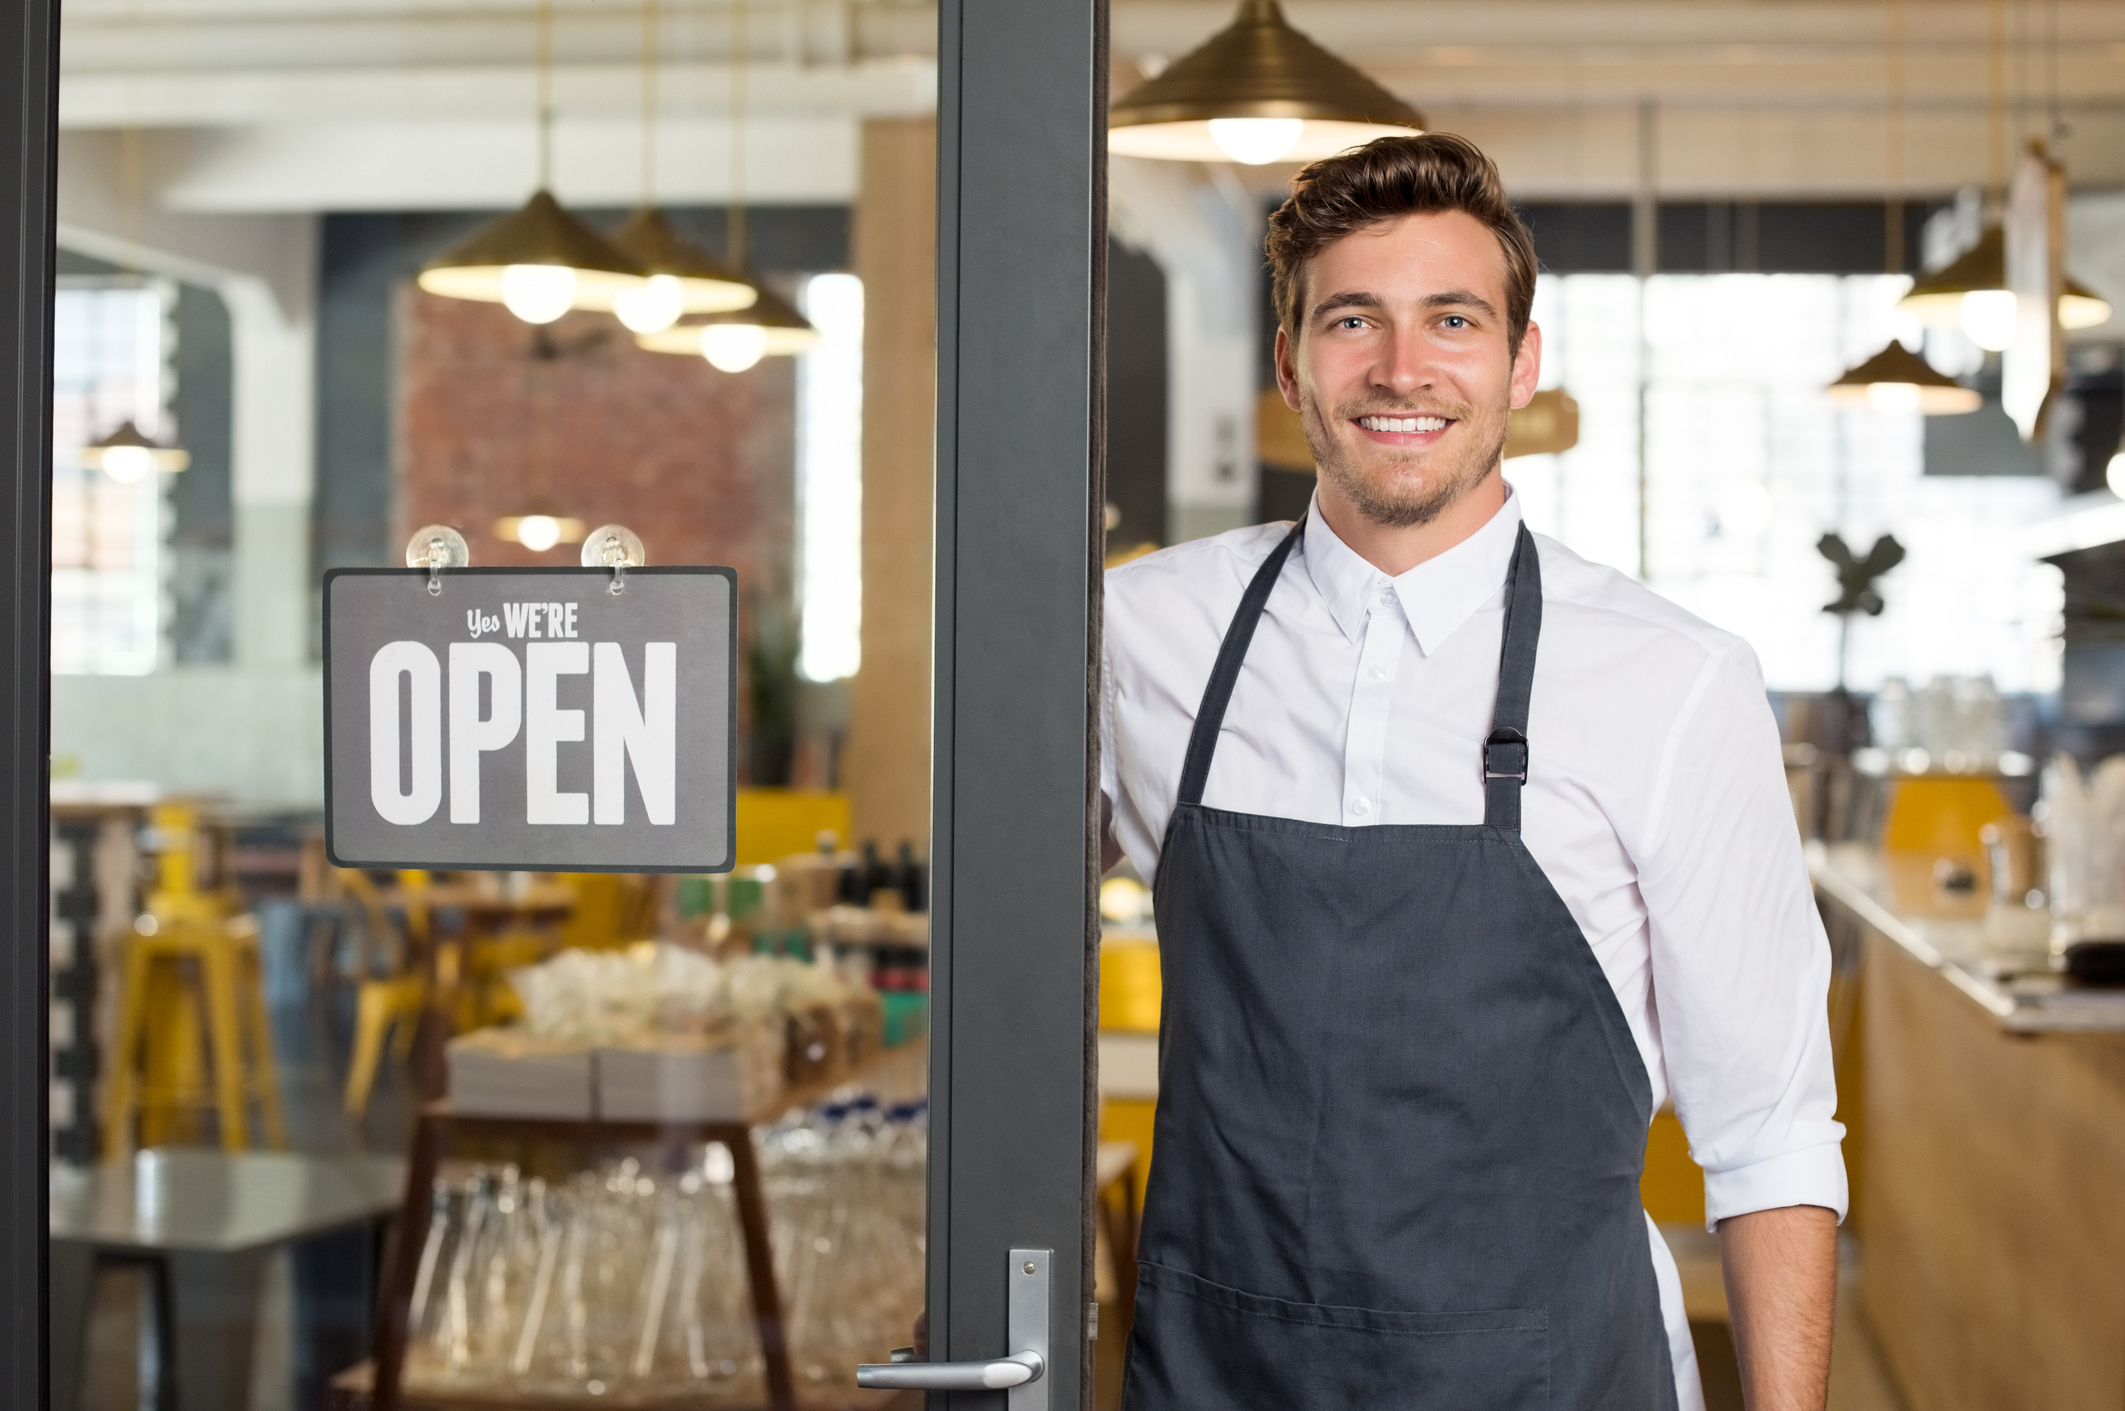 BUSINESS INSURANCE - CLICK FOR A QUOTE